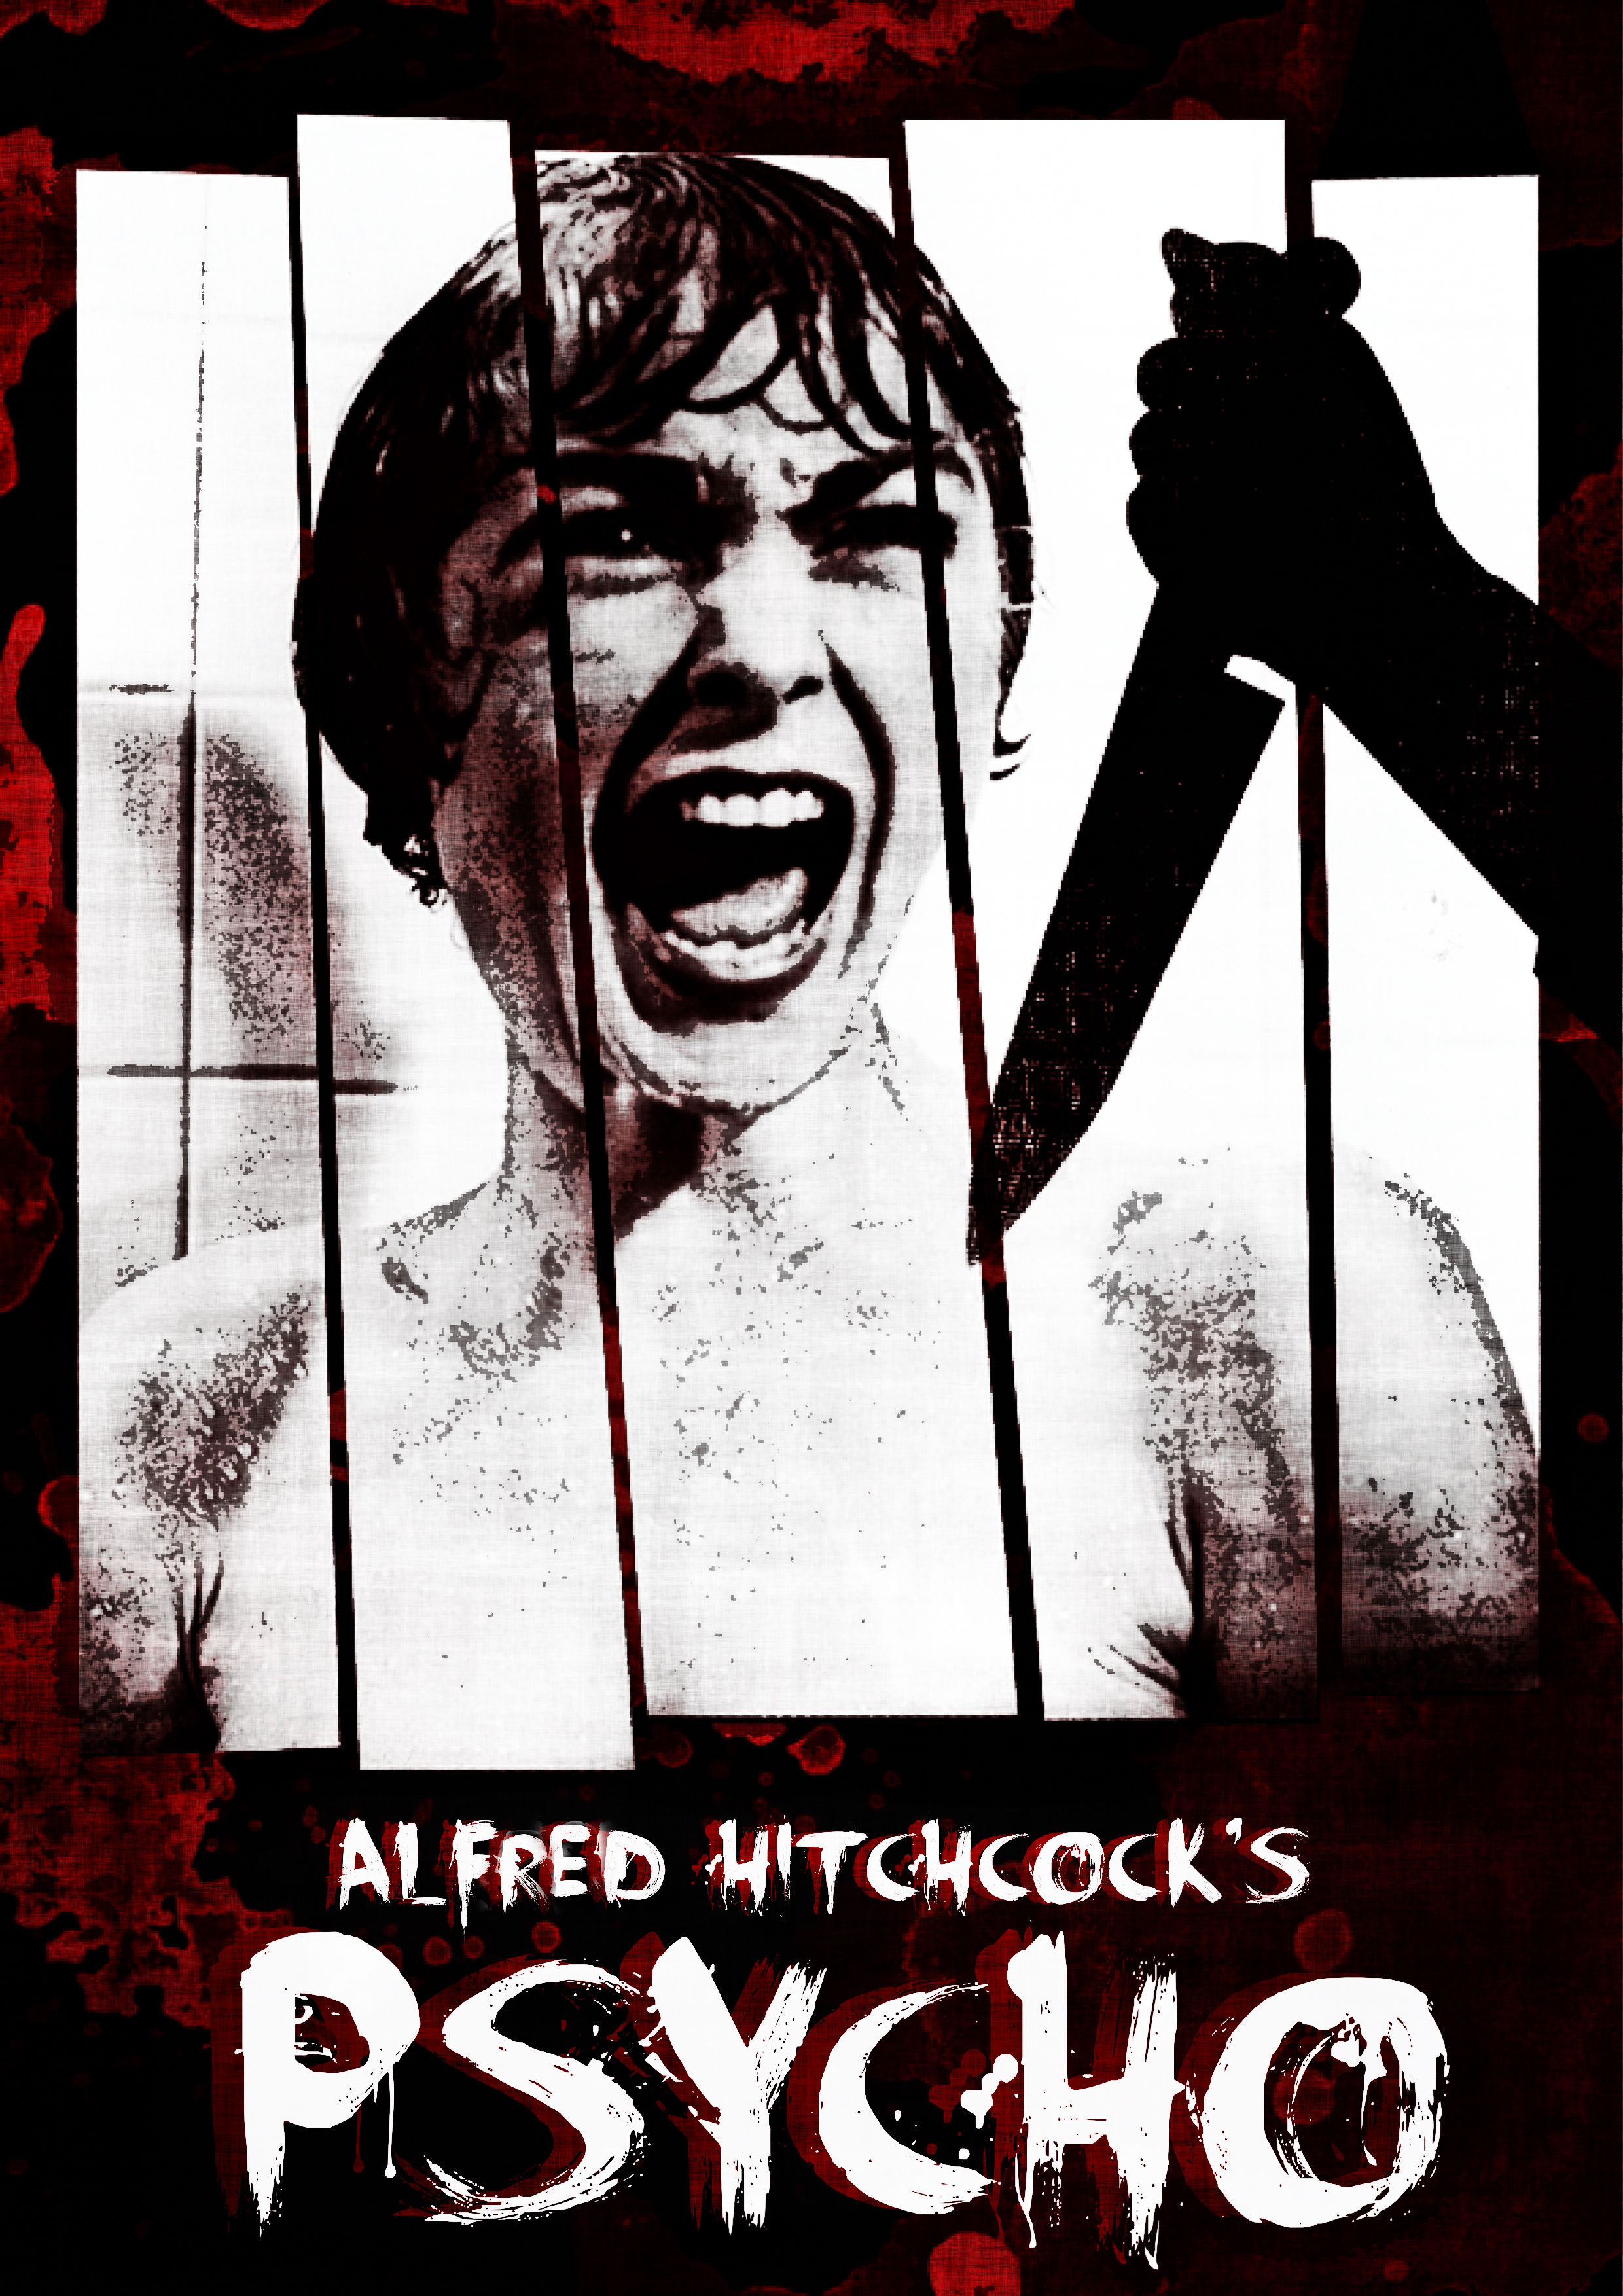 a thematic analysis of alfred hitchcocks psycho on horror films Top 13 basic film techniques of alfred shower scene in psycho uses montage to hide film offing david and is currently in development of two new films.